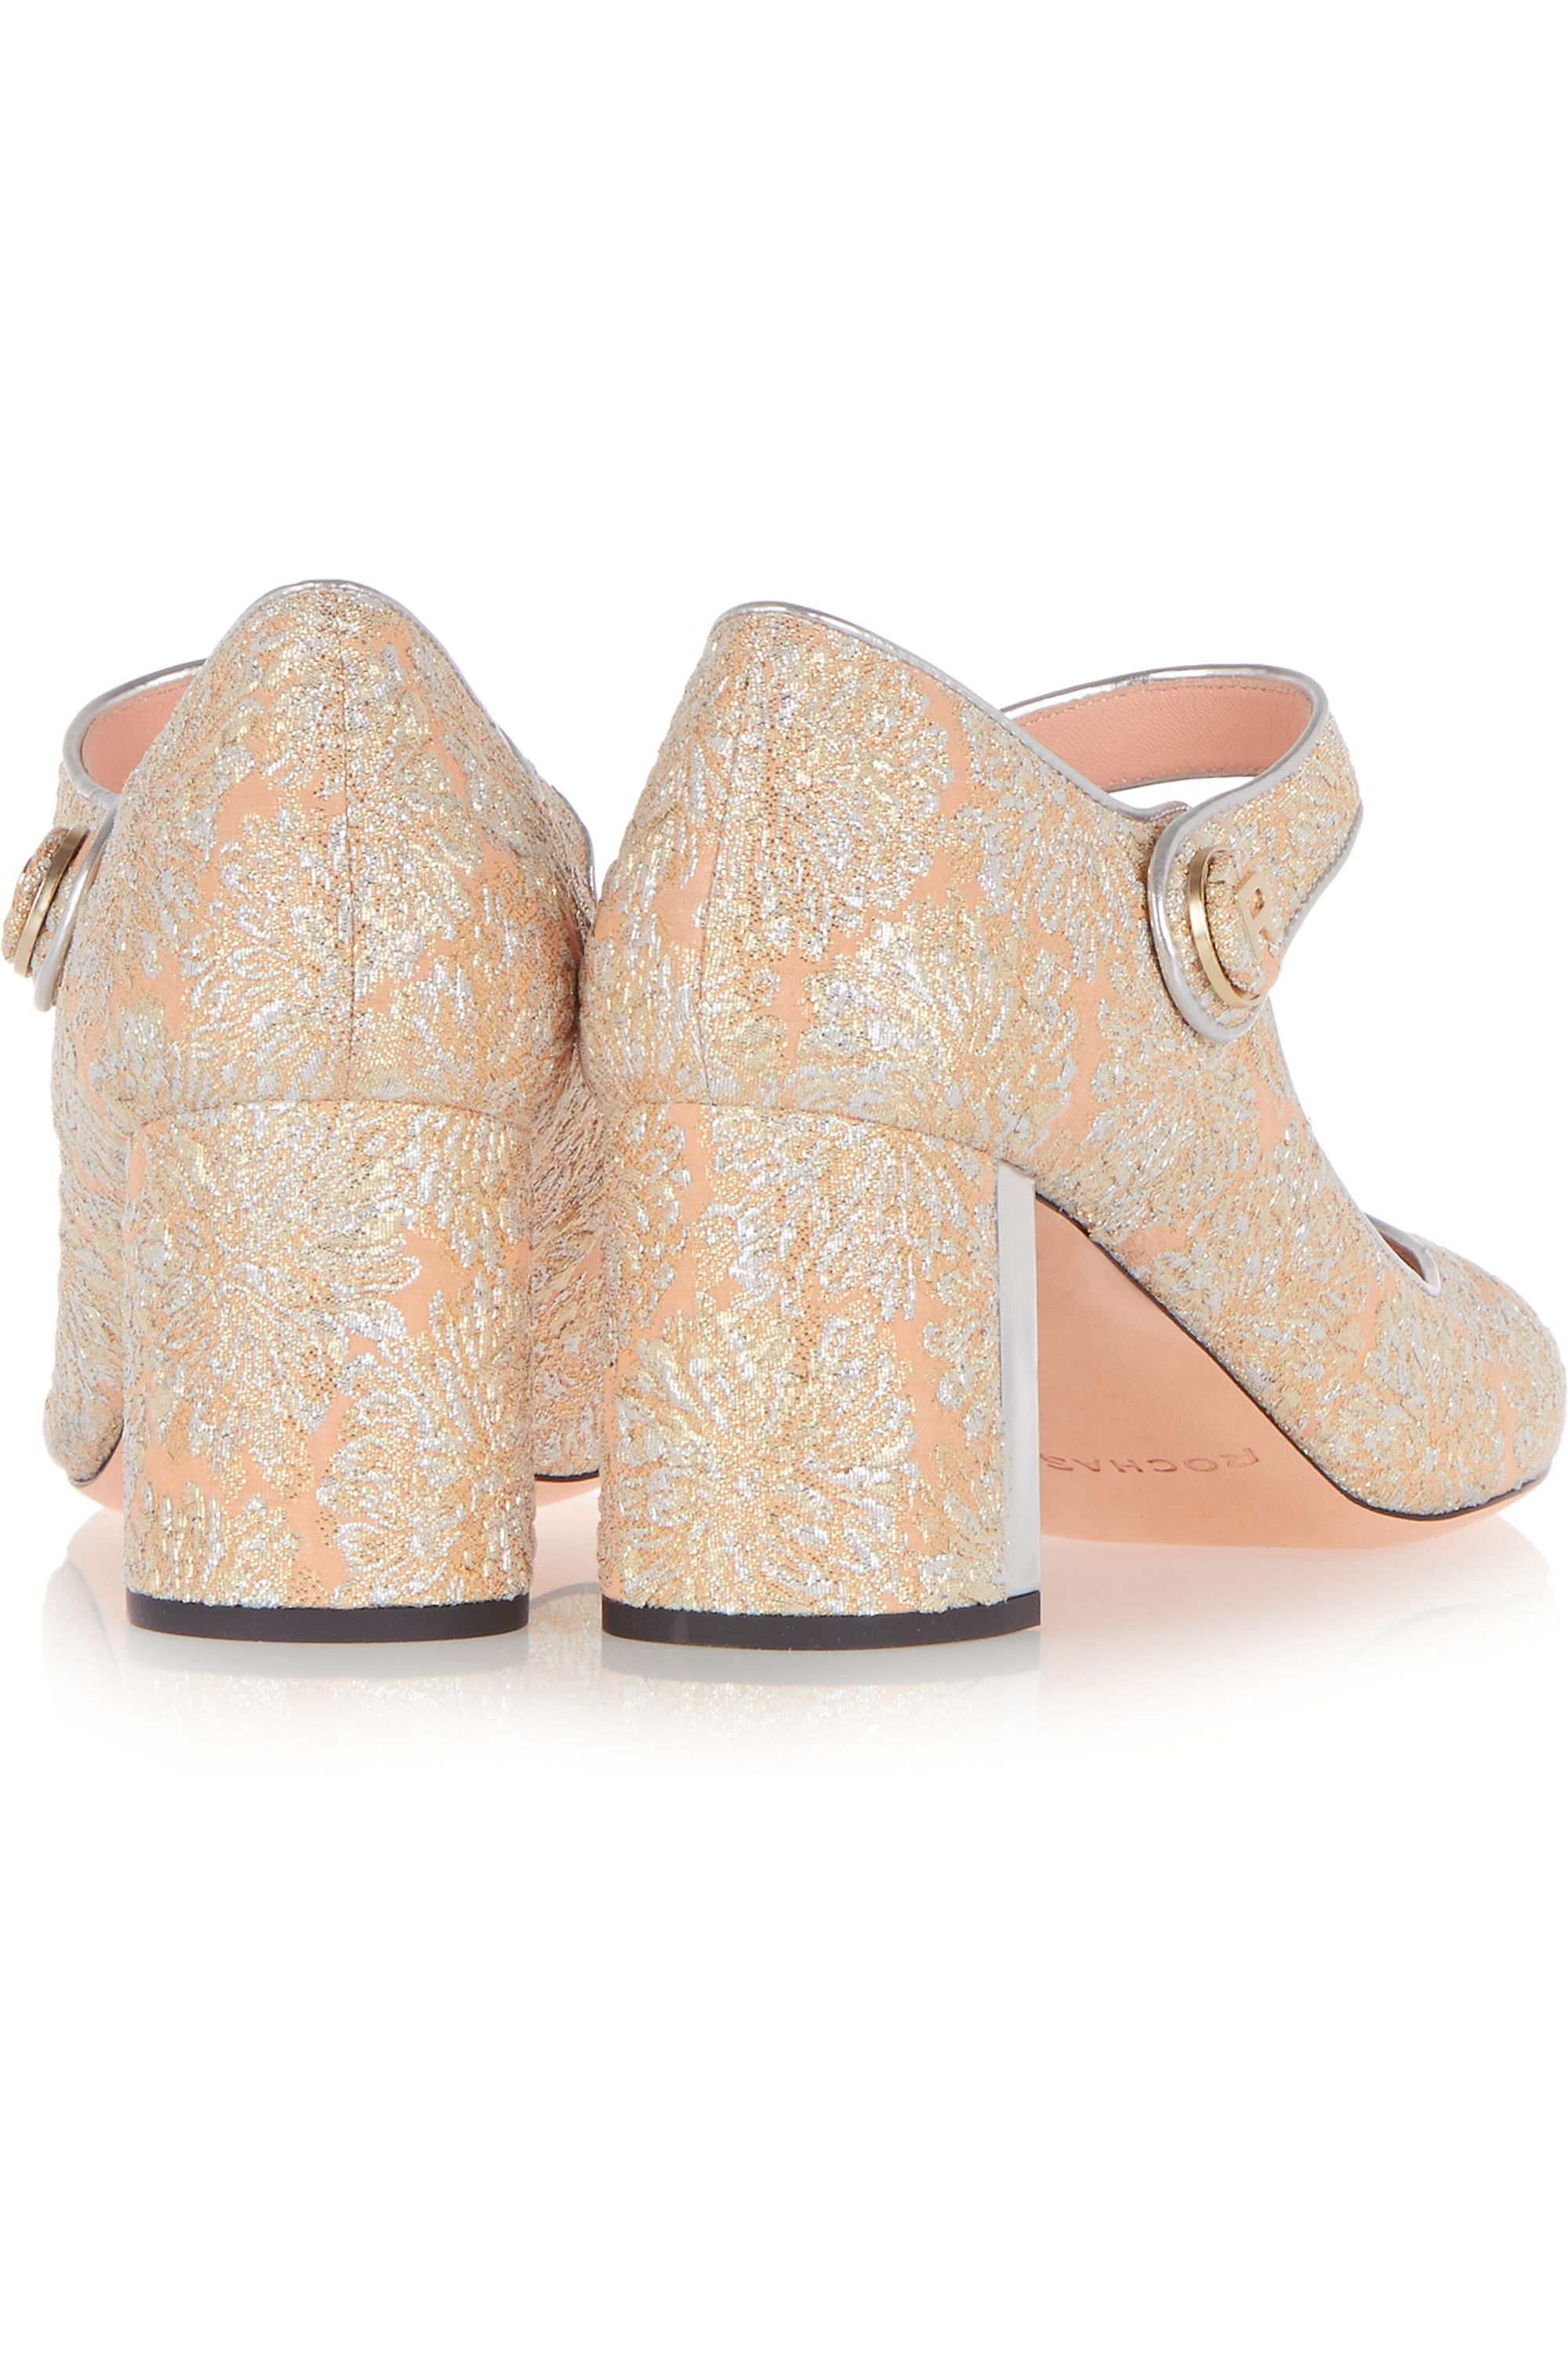 Rochas Metallic leather-trimmed brocade Mary Jane pumps